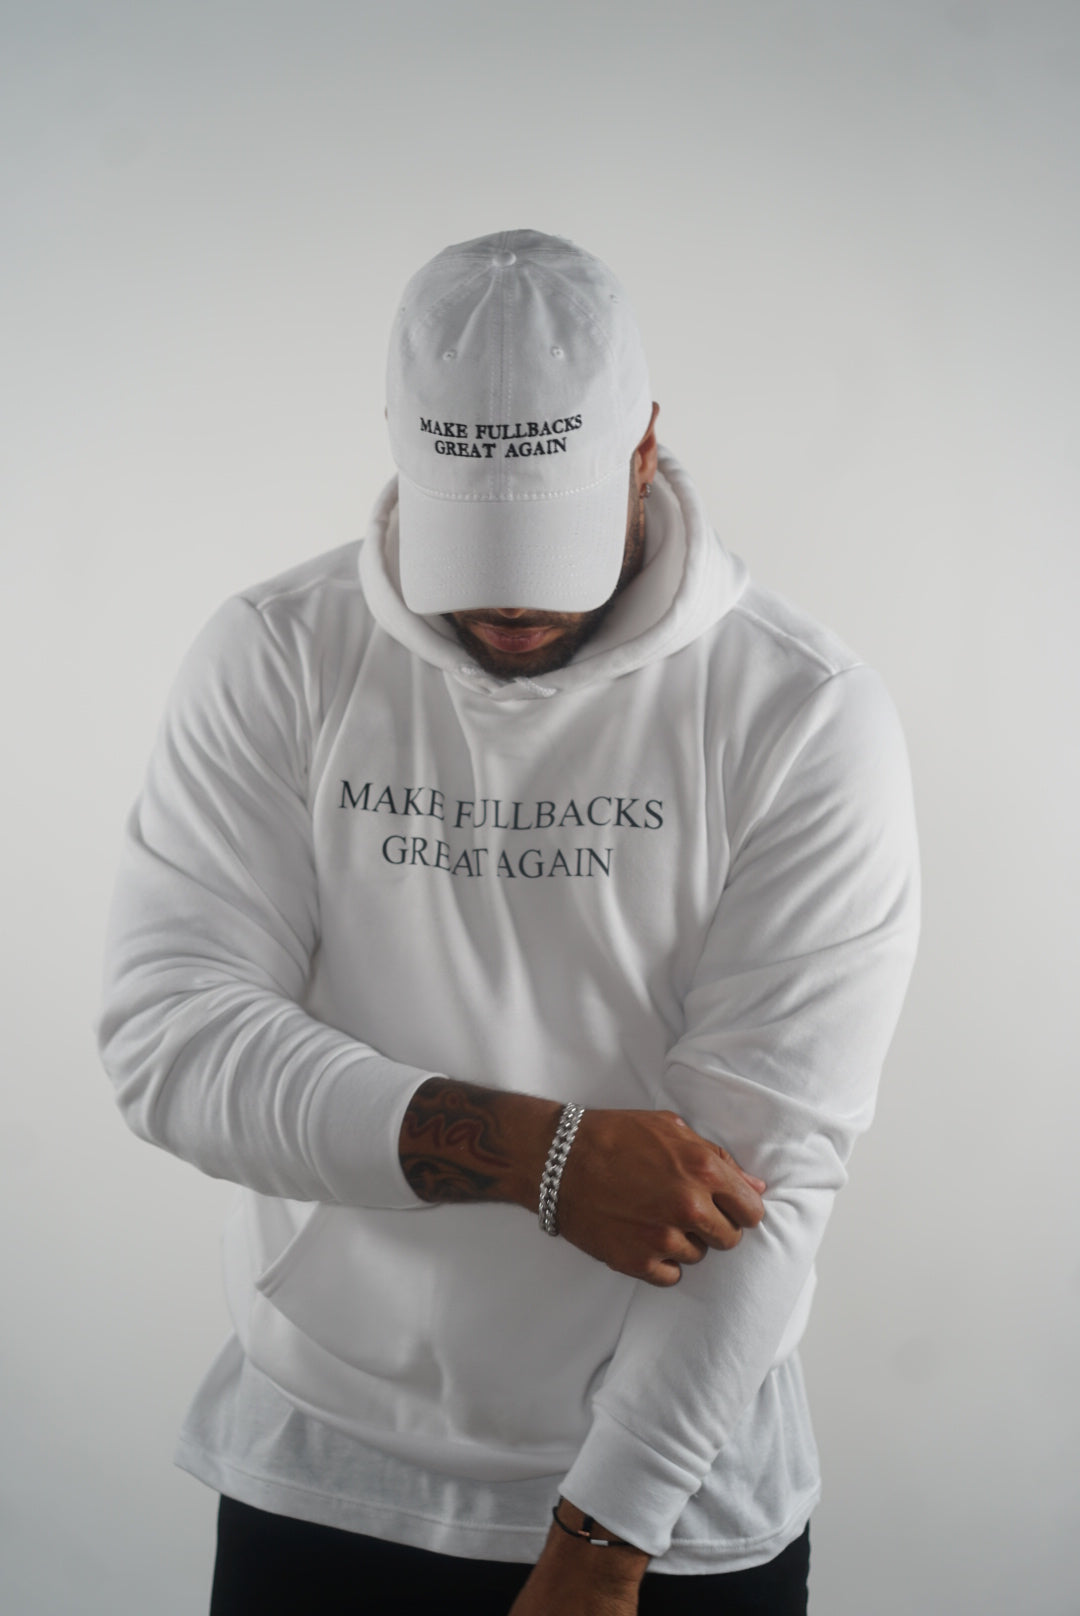 MFGA White Hoodie-Make Fullbacks Great Again by Keith Smith